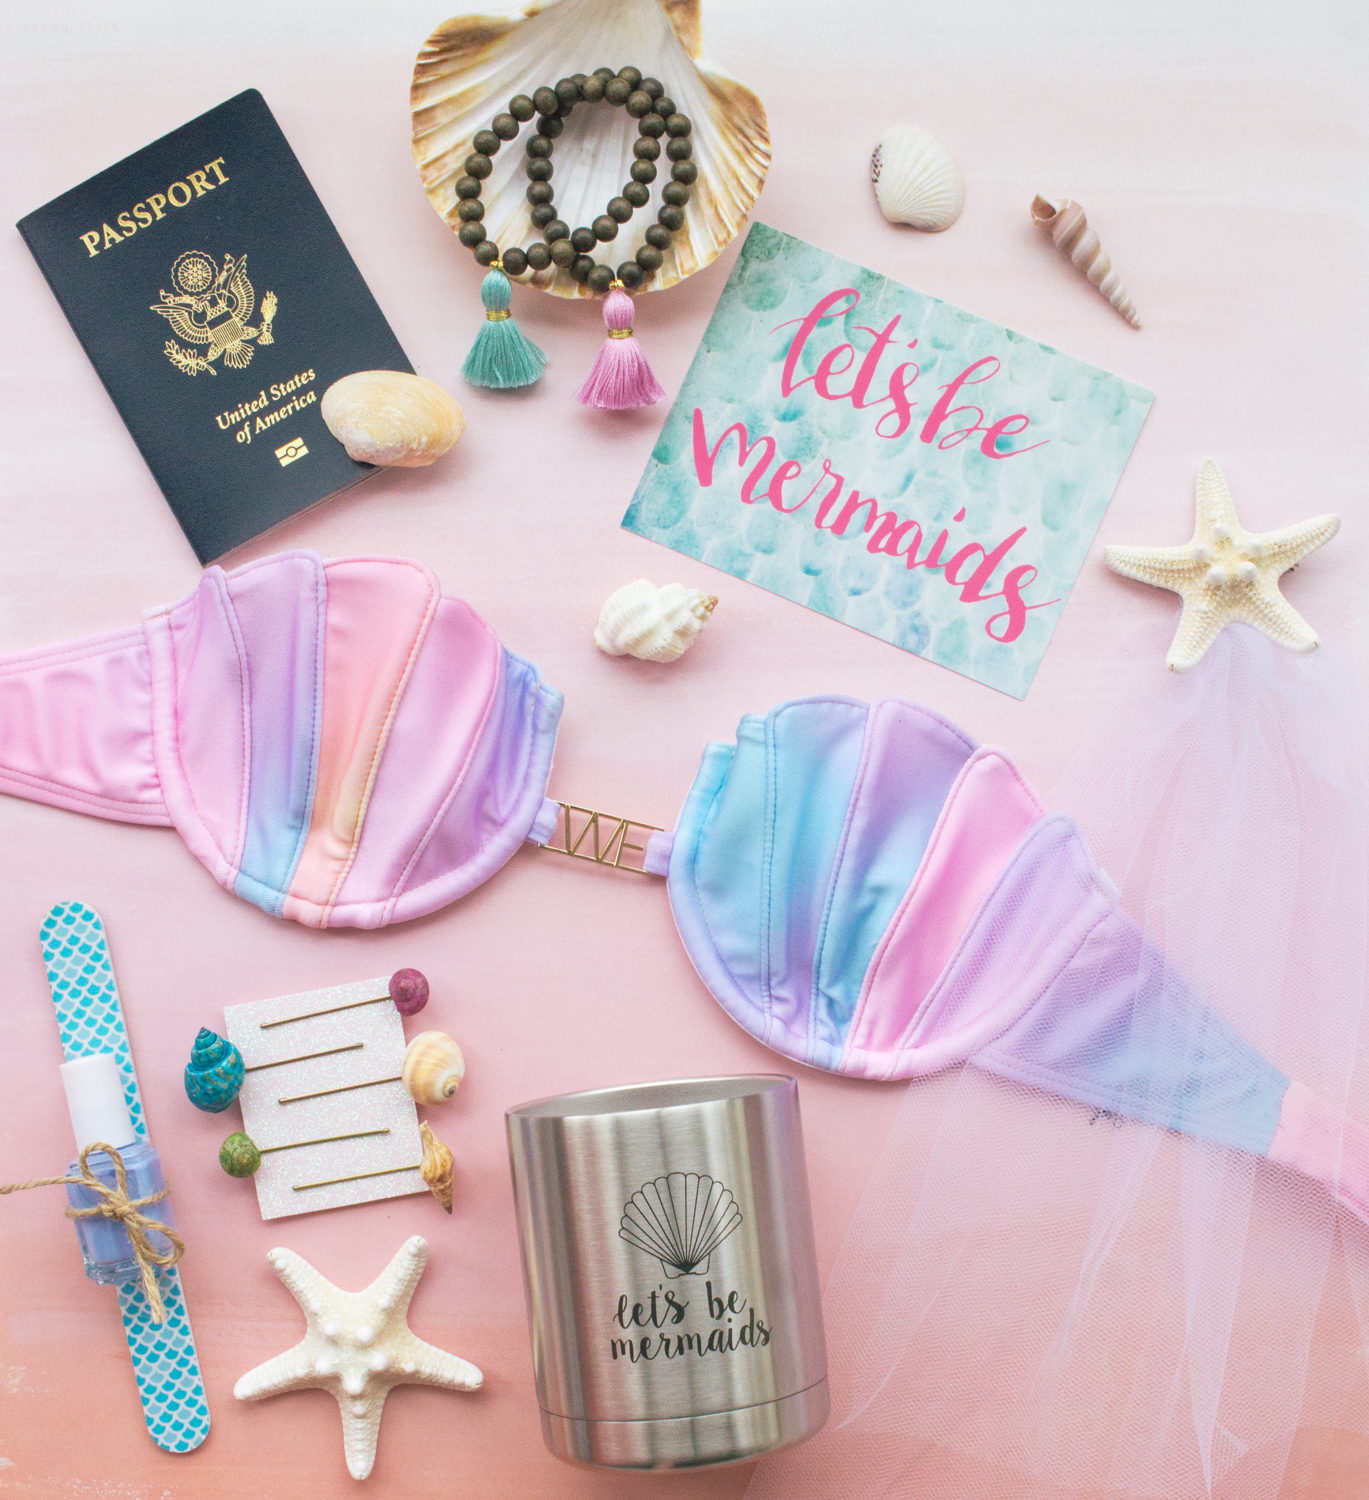 livvyland-blog-olivia-watson-costa-rica-bachelorette-destination-vacation-getaway-beach-where-to-go-big-group-mermaid-party-nosara-casa-de-alces-shell-swimsuit-passport